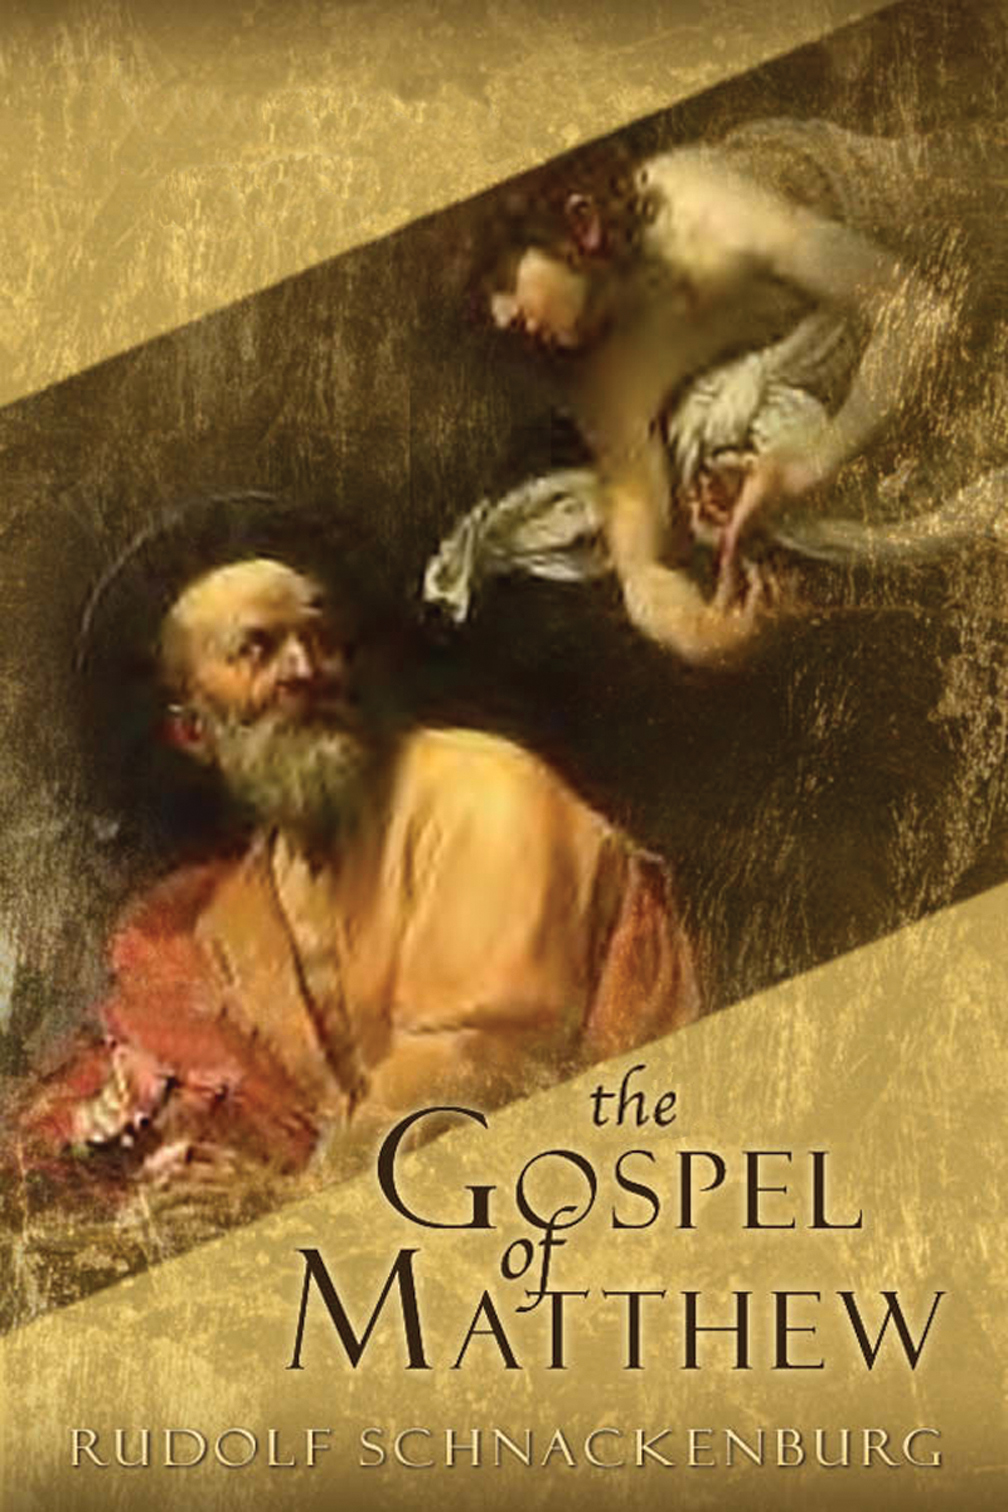 gospel of matthew essay The book of matthew is a gospel that contains narrative history, genealogy, parables, sermons, and some prophetic oracles it was written by matthew (levi), the disciple of christ around 48-50 ad the key word in matthew is kingdom and is used 28 times the personalities of this book include the.